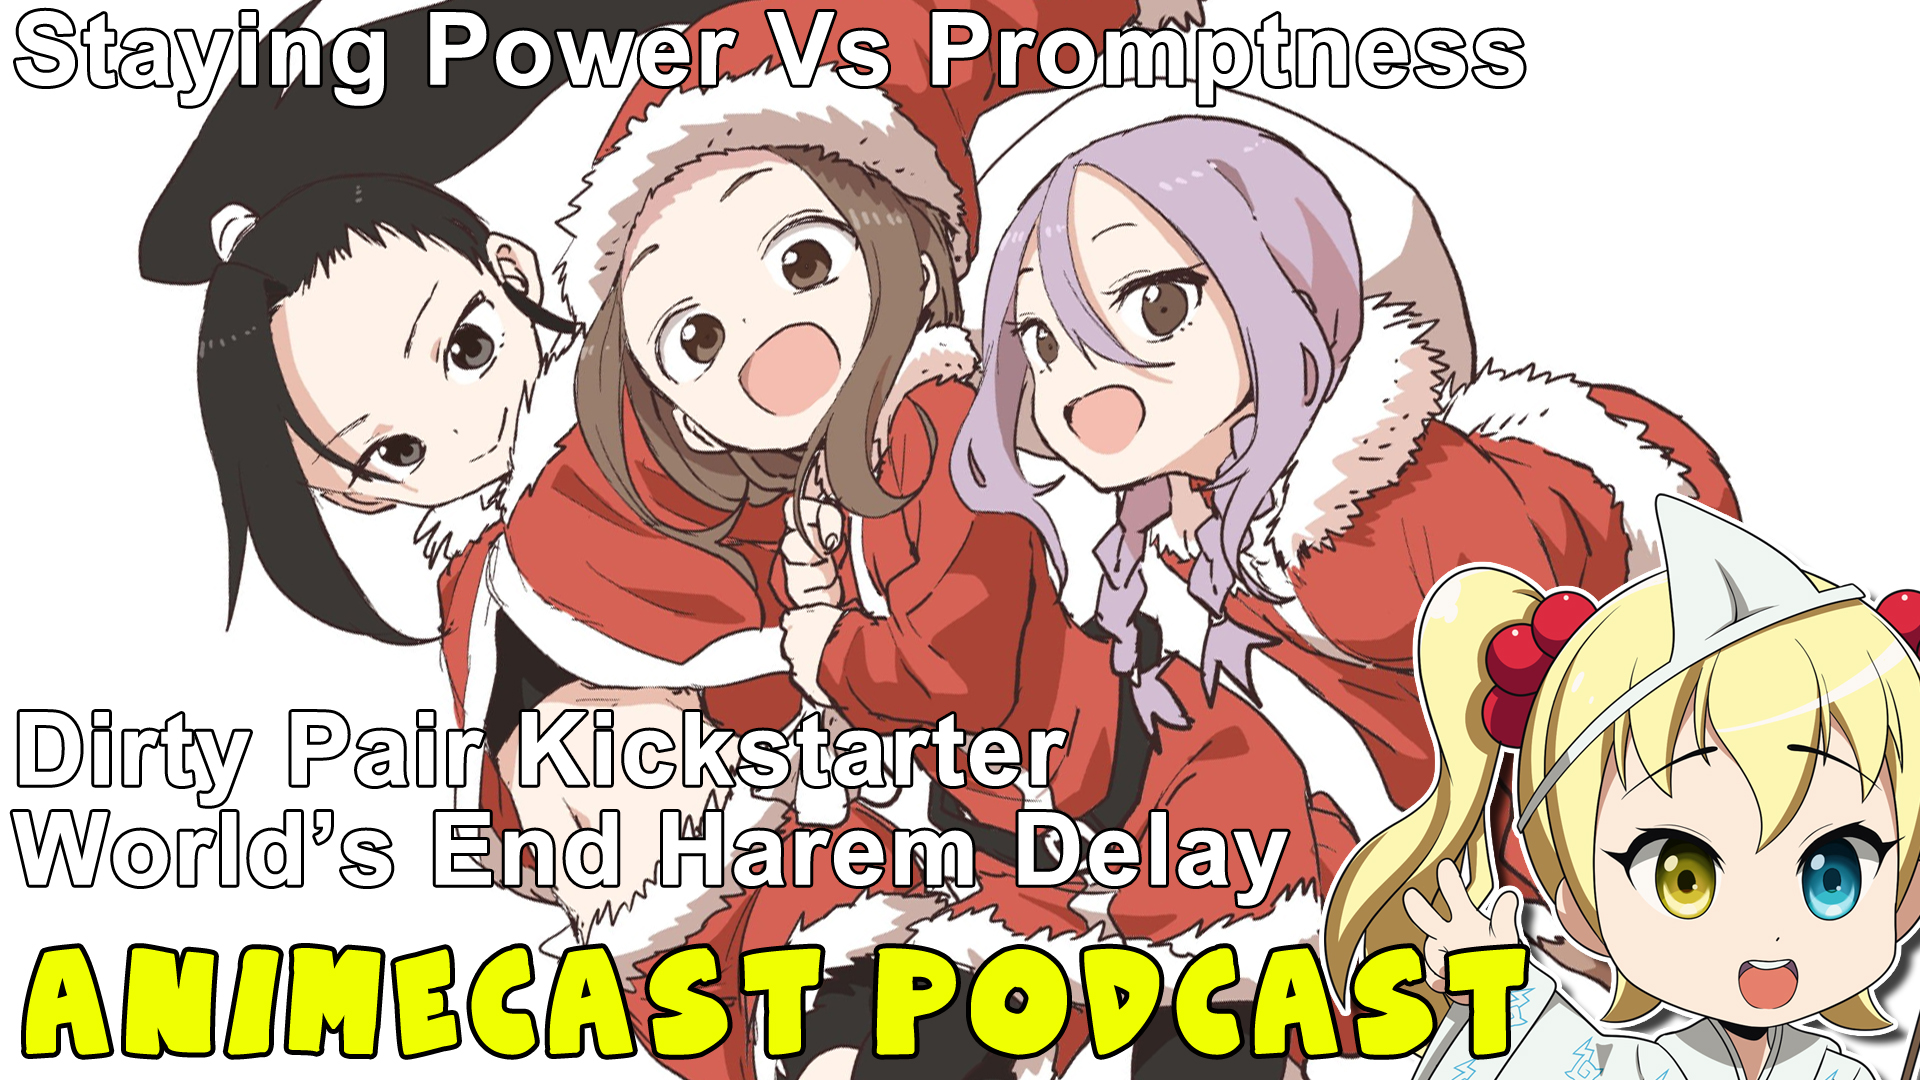 Featured image for Animecast: Staying Power and Promptness In Anime Reviewing